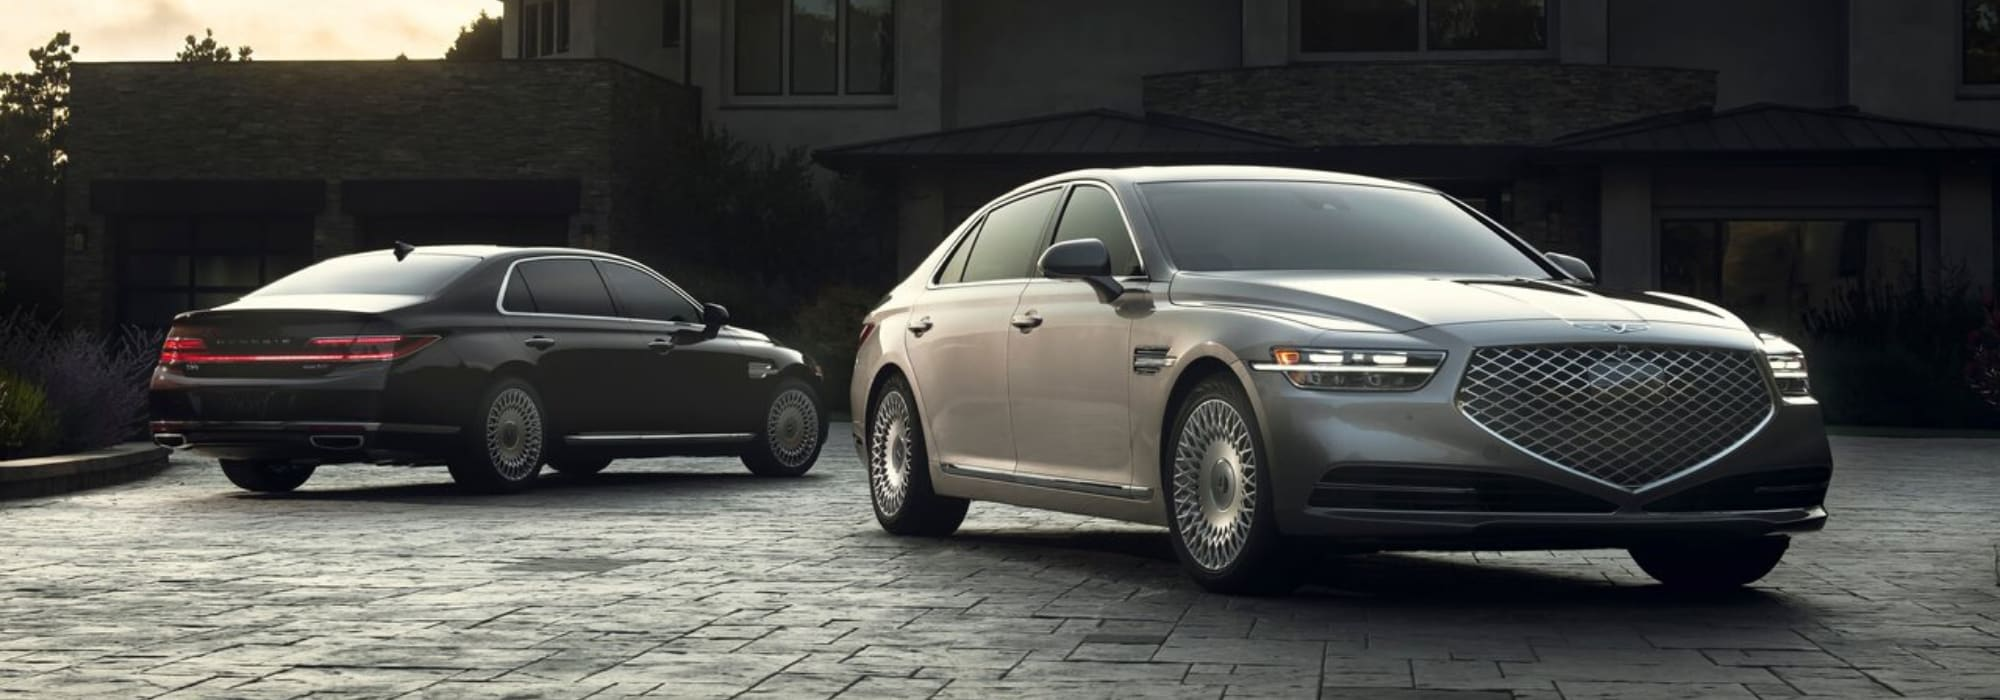 New 2020 Genesis G90 Luxury Sedan hero image